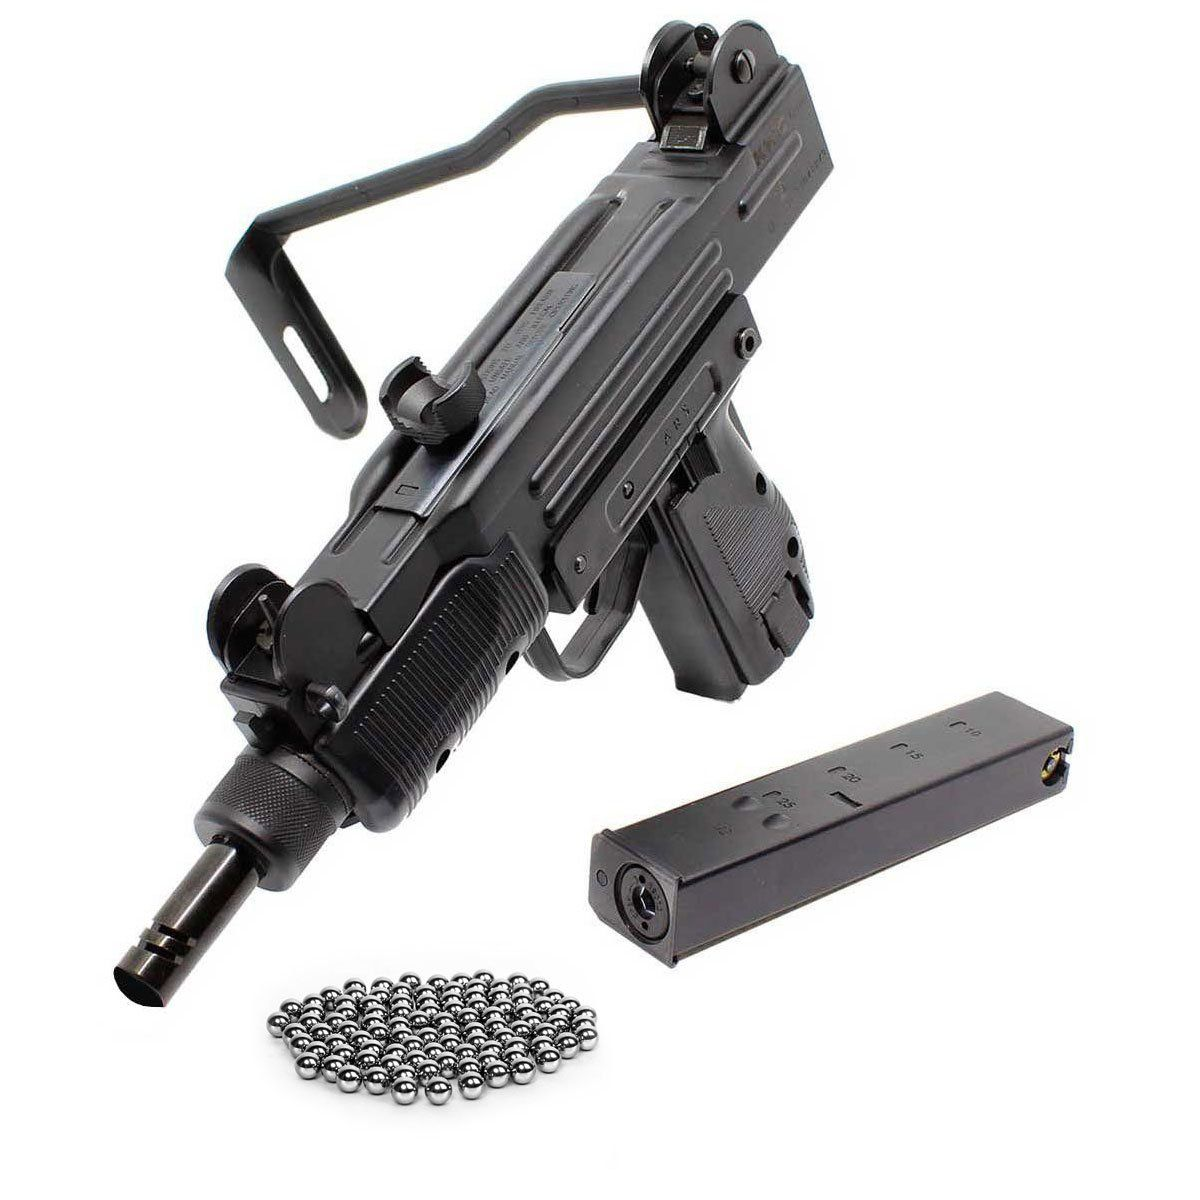 Submetralhadora de Pressão KWC Uzi Metal Calibre 4,5 mm CO2